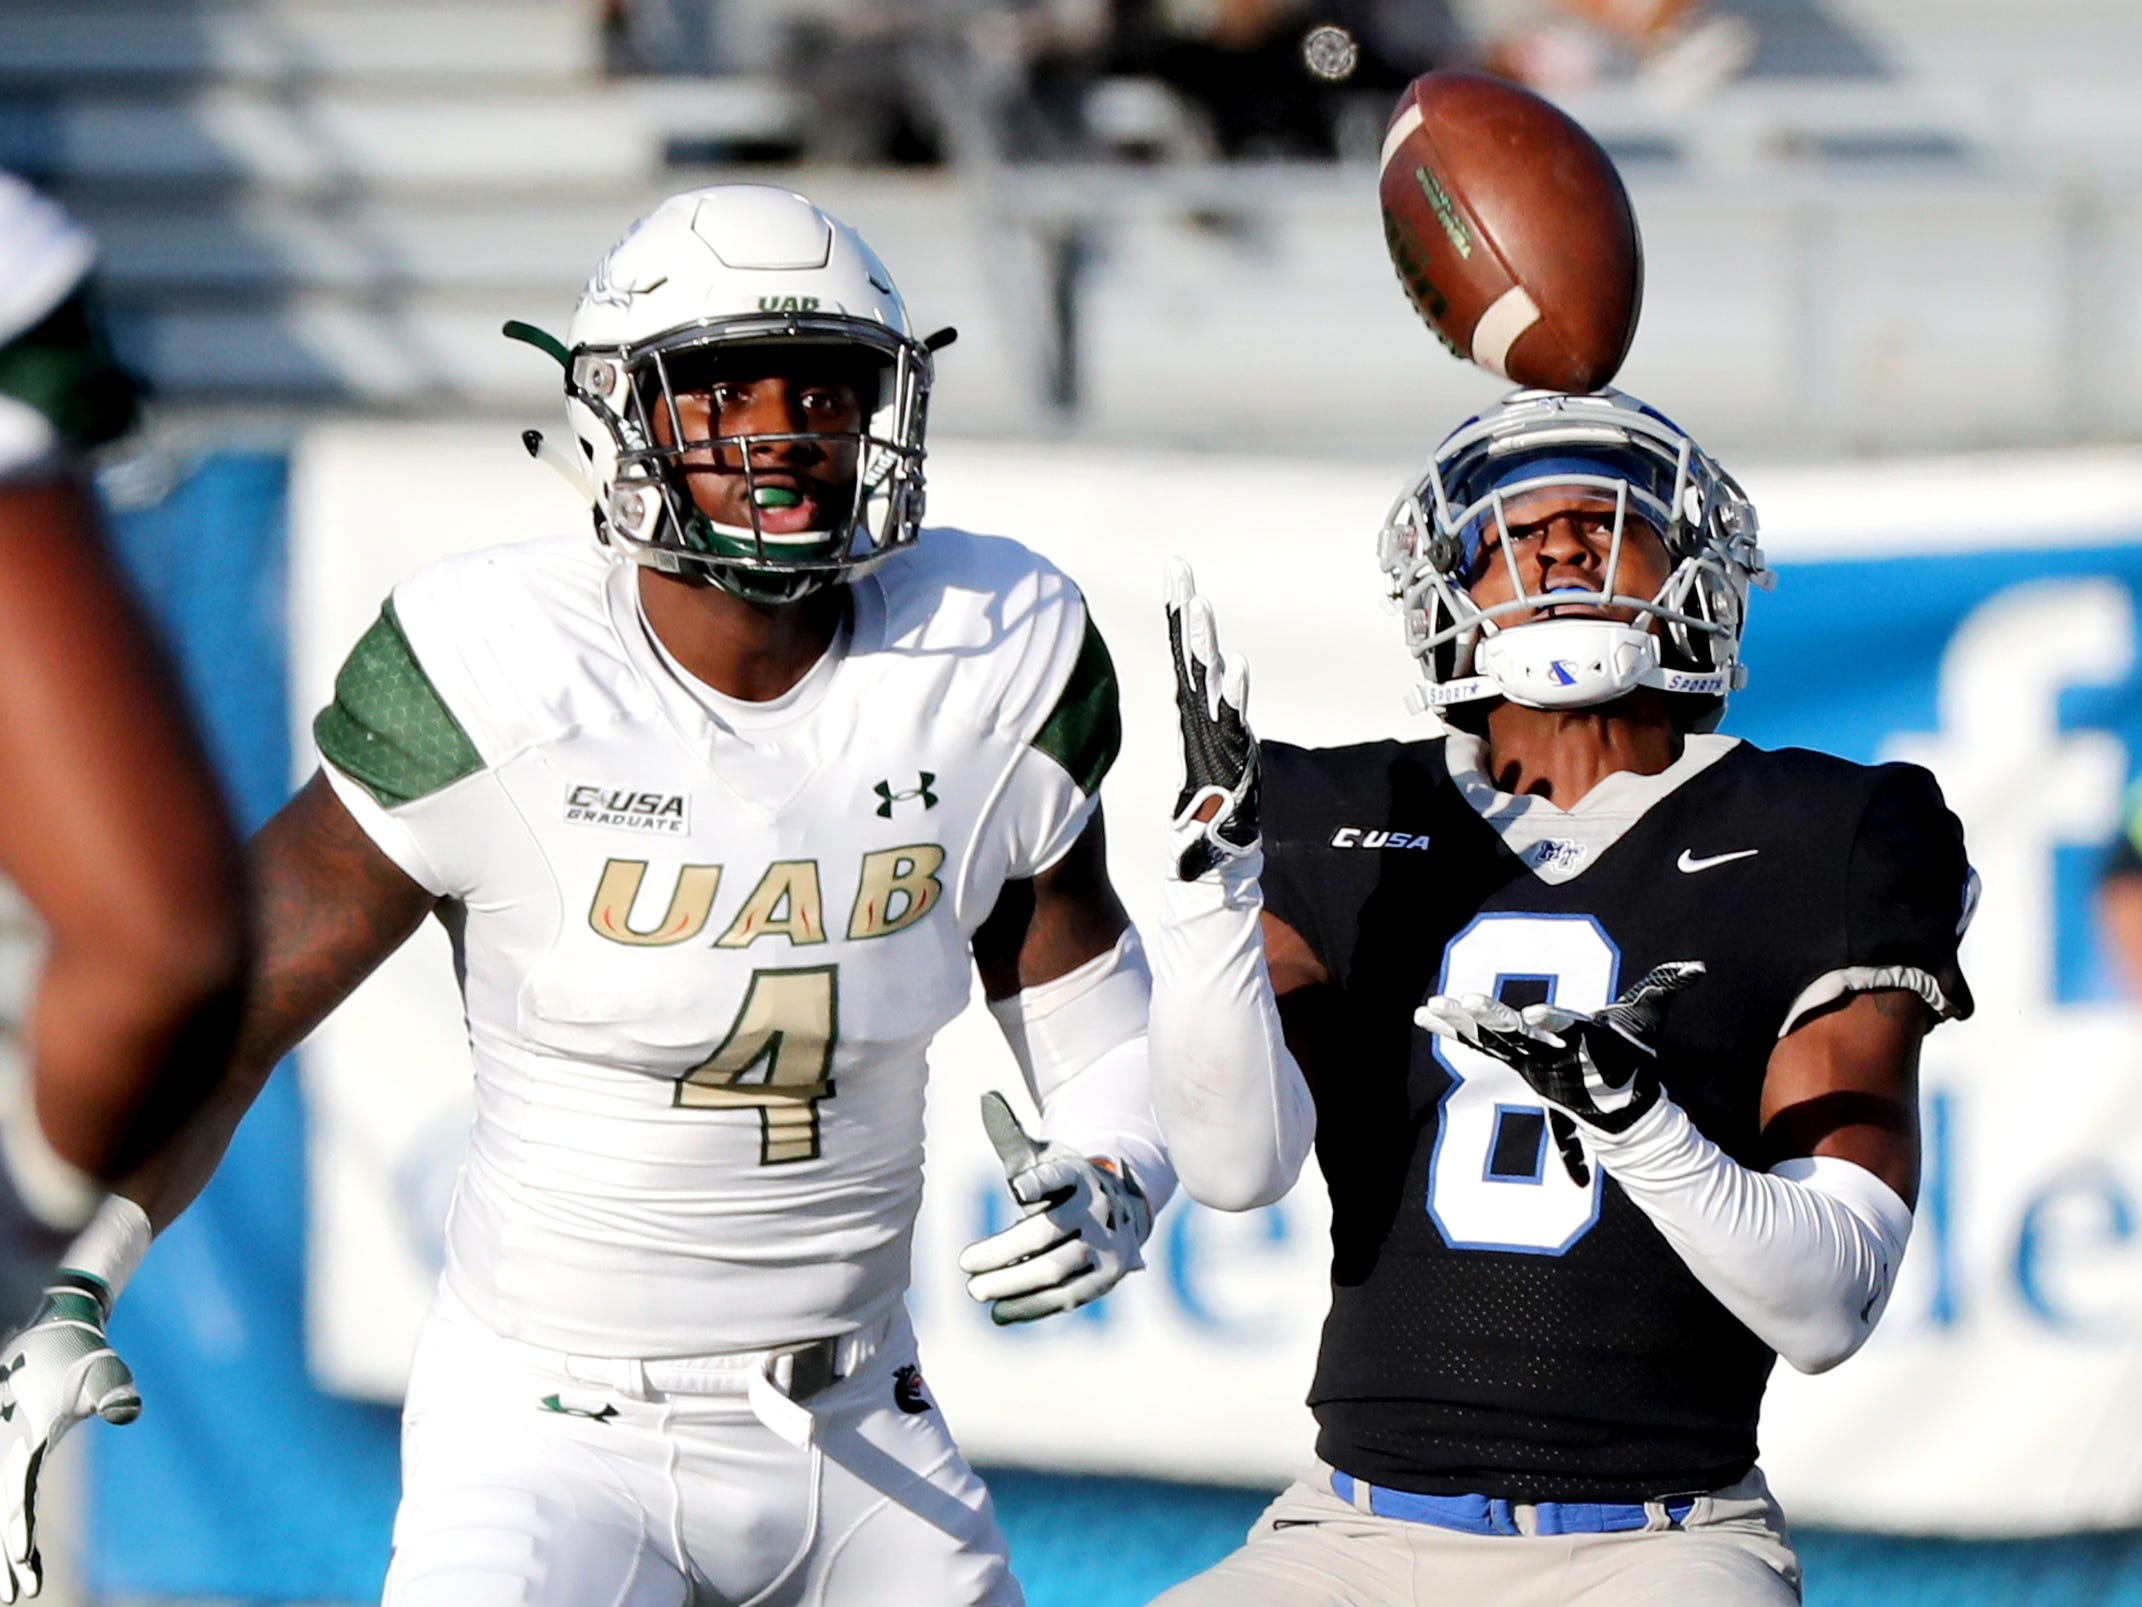 MTSU's Ty Lee (8) catches a punt return as UAB's Starling Thomas V (4) watches behind him during the game at MTSU on Saturday, Nov. 24, 2018.